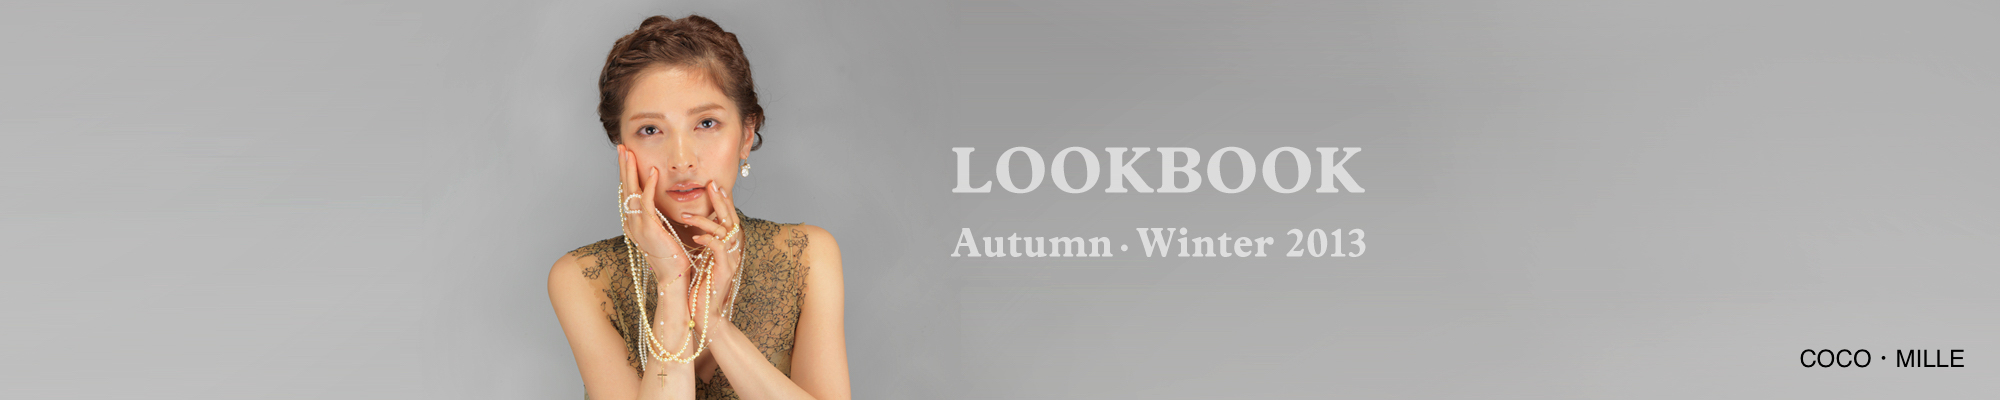 lookbook_header